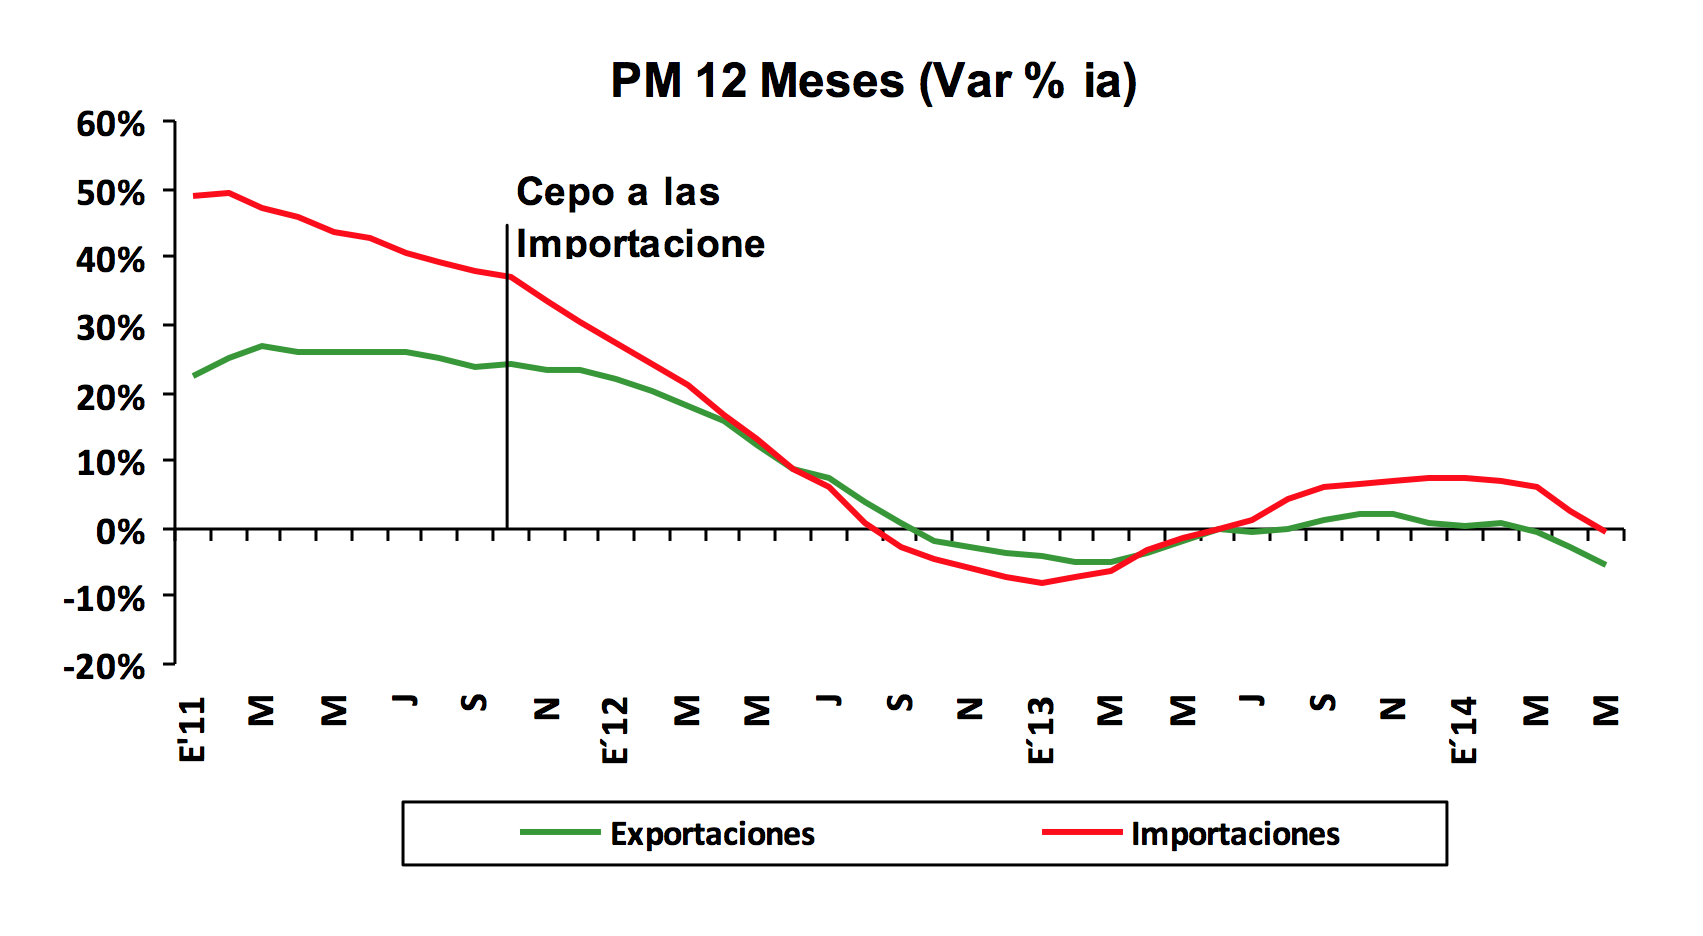 Argentina's annual variation of exports and imports, seasonally adjusted